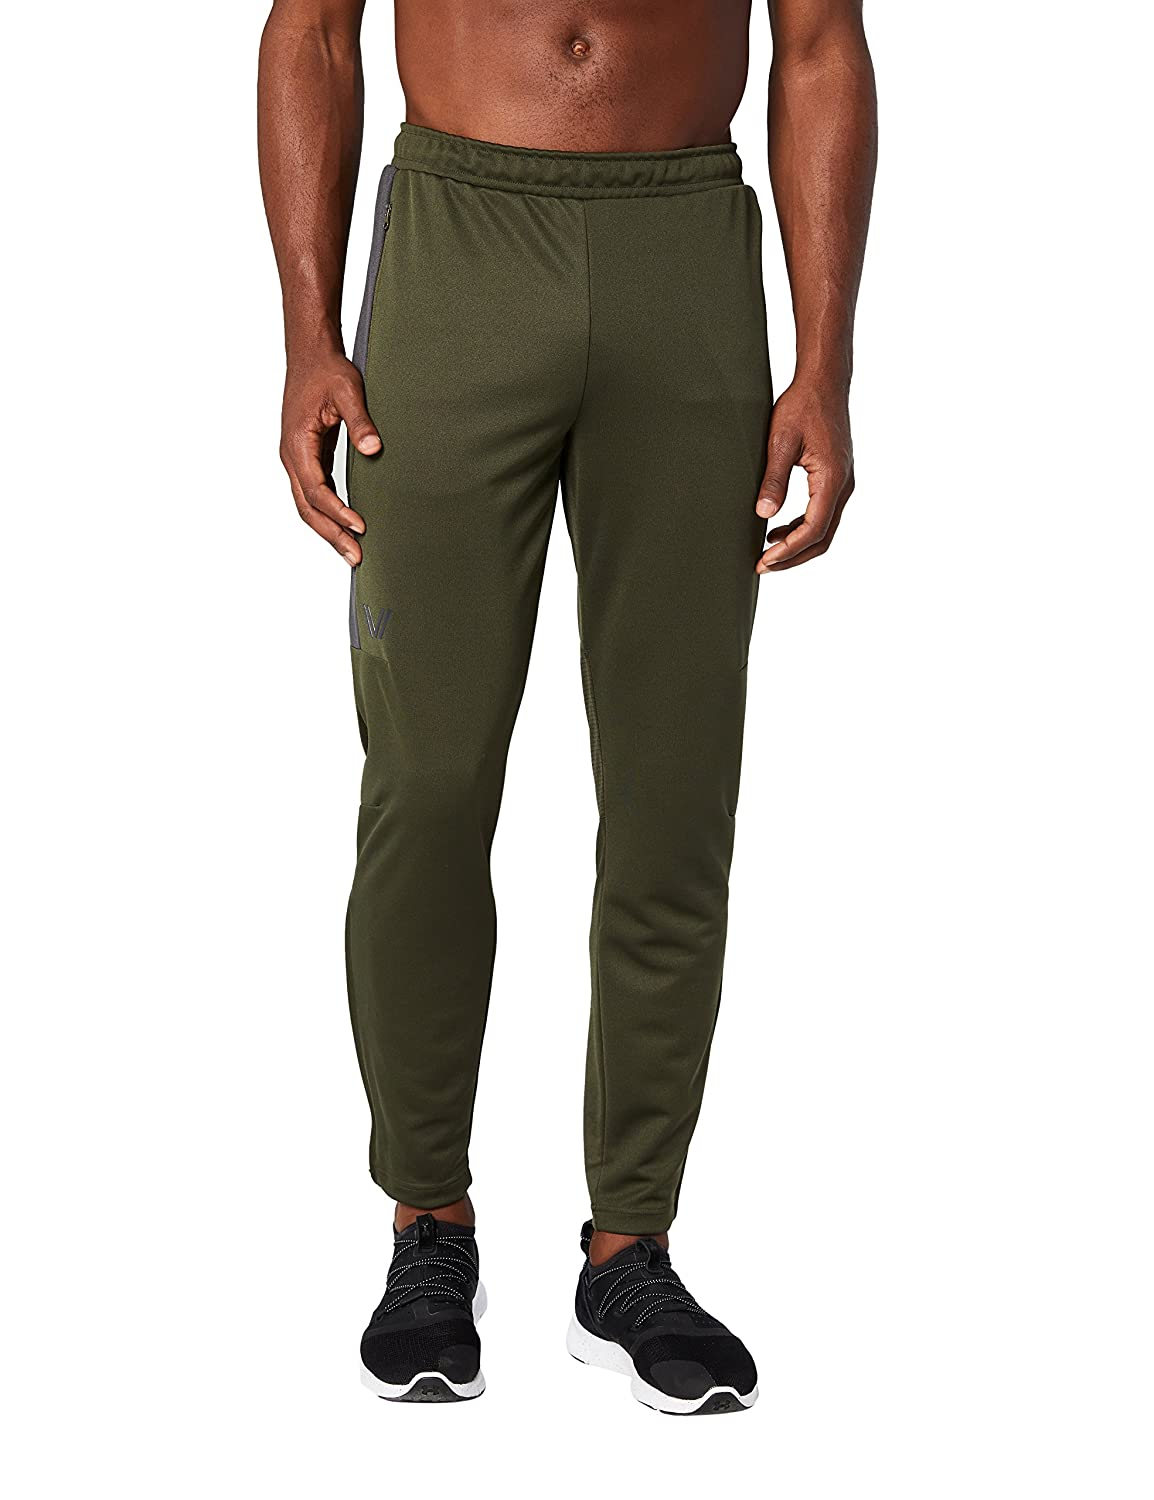 Peak Velocity Mens Trackster Athletic-fit Pant SYMM18004